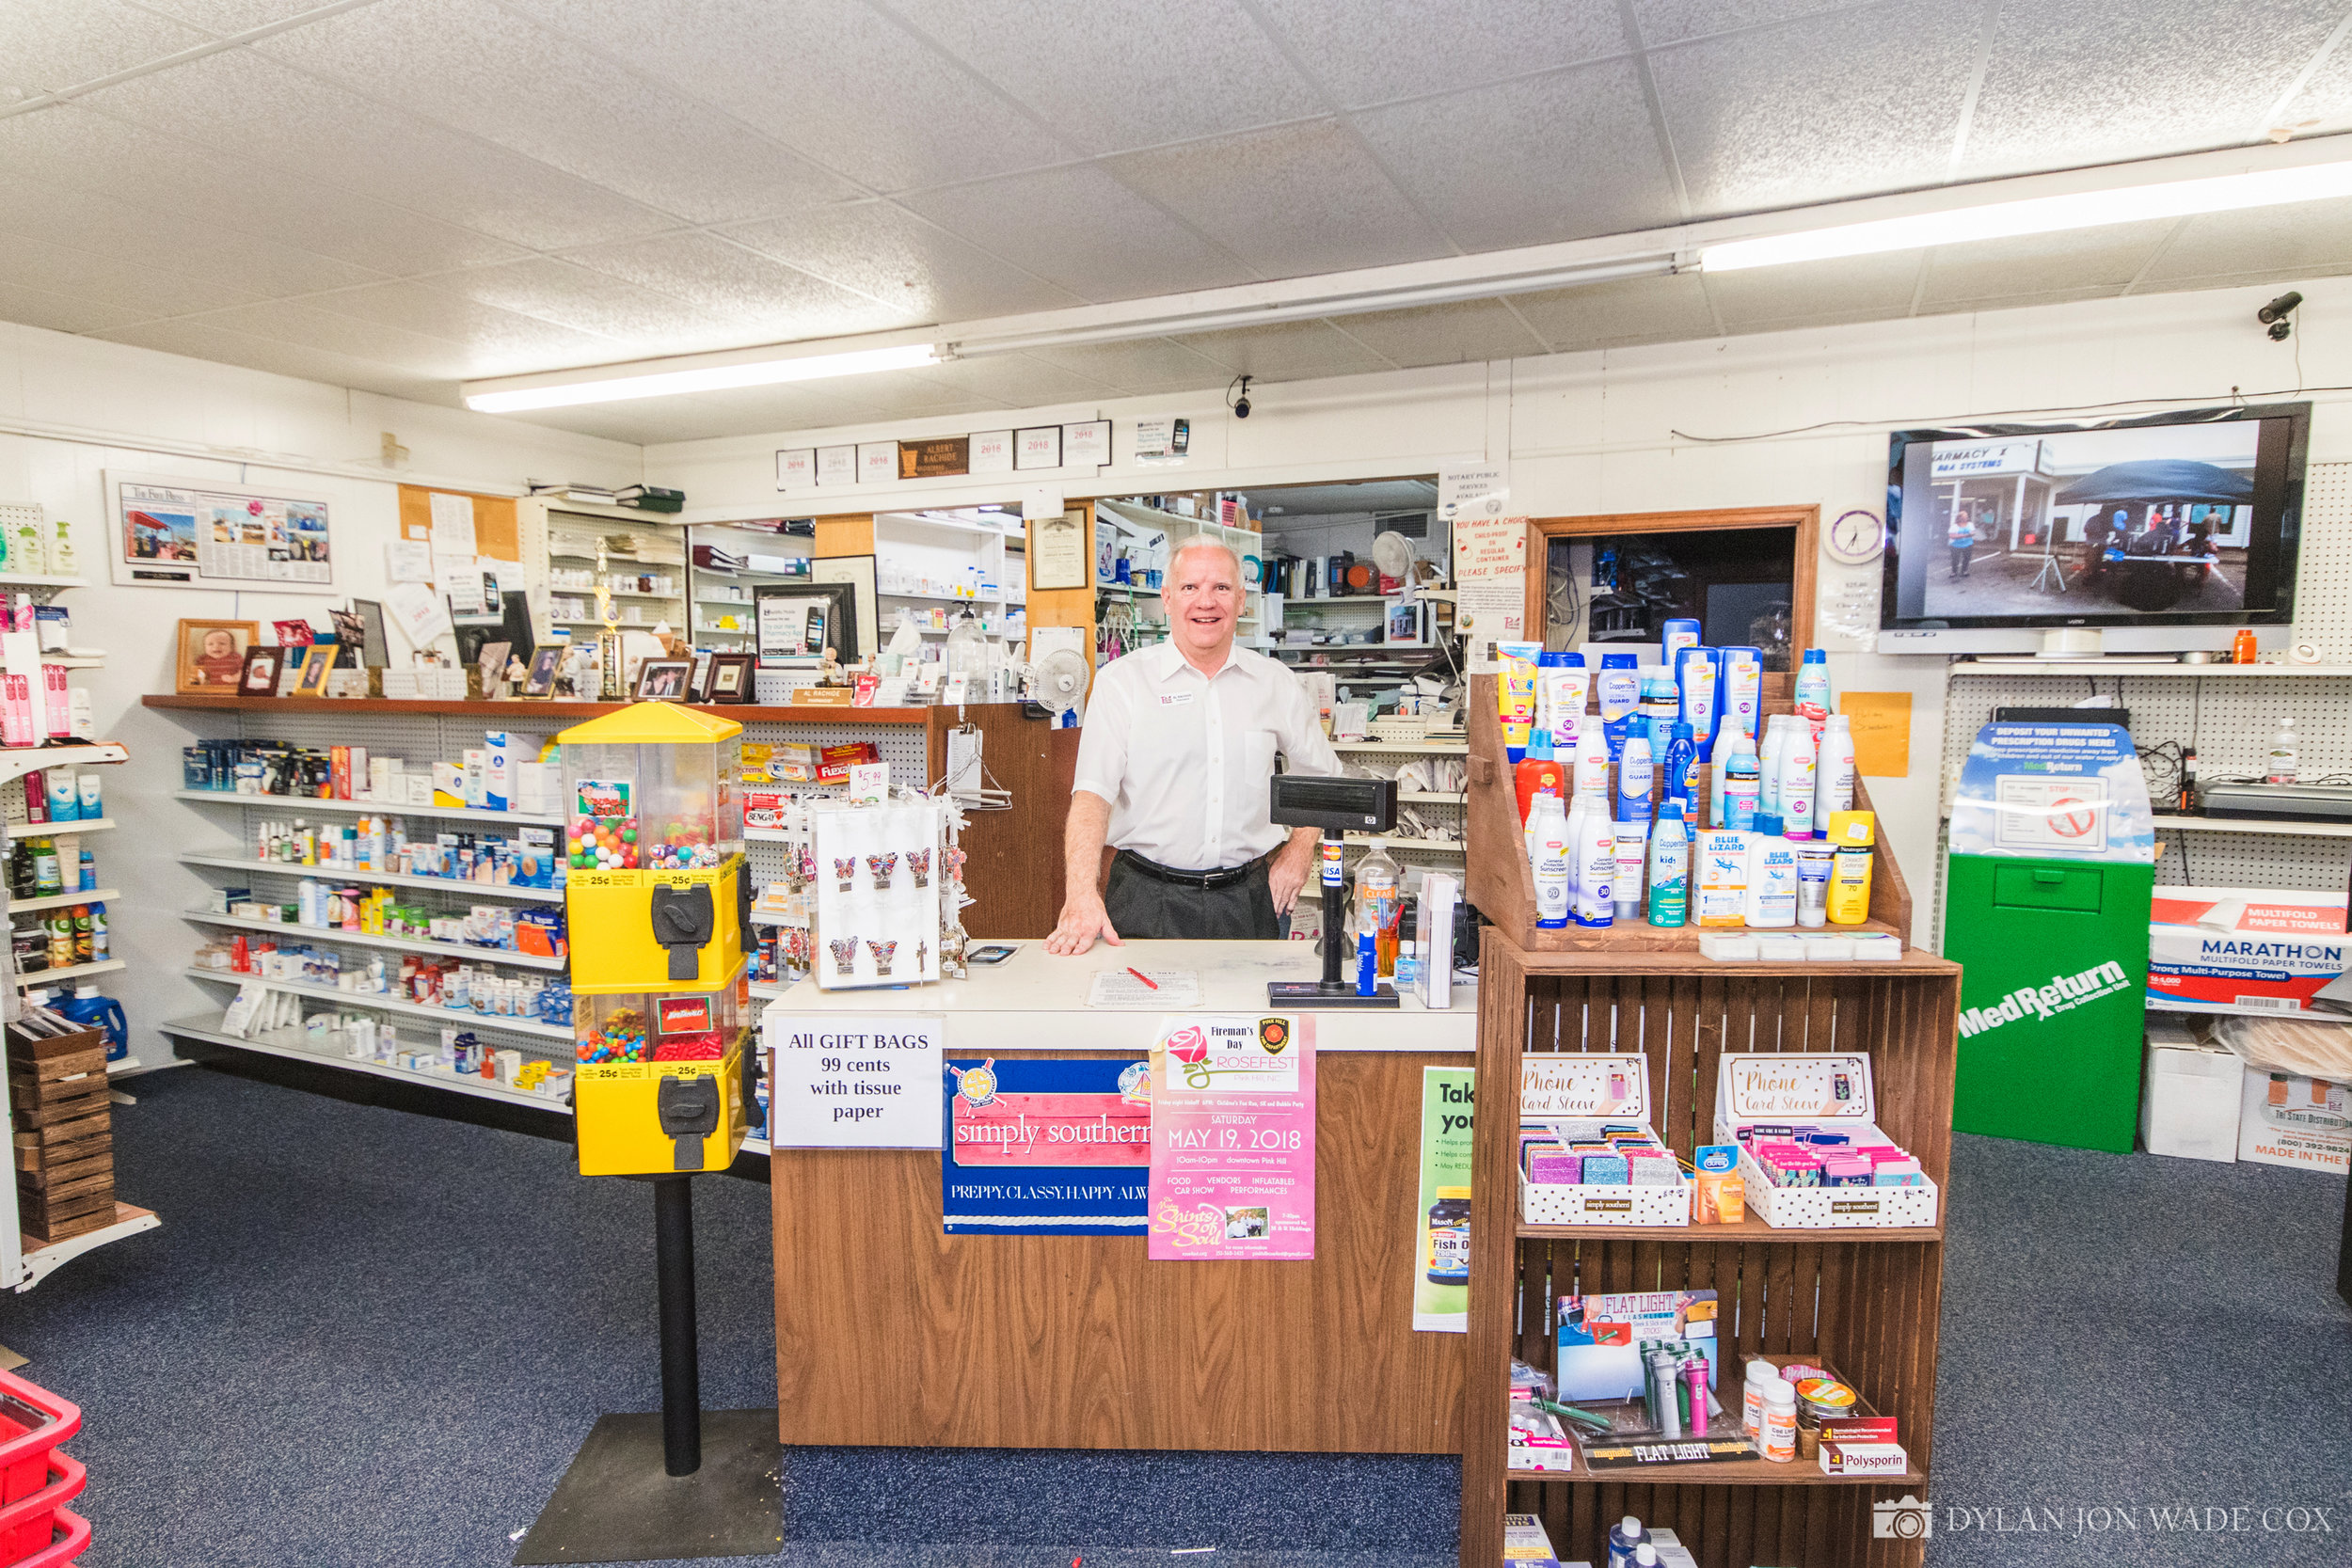 Al Rachide at the Pink Hill Pharmacy counter. Photo by Dylan Jon Wade Cox.